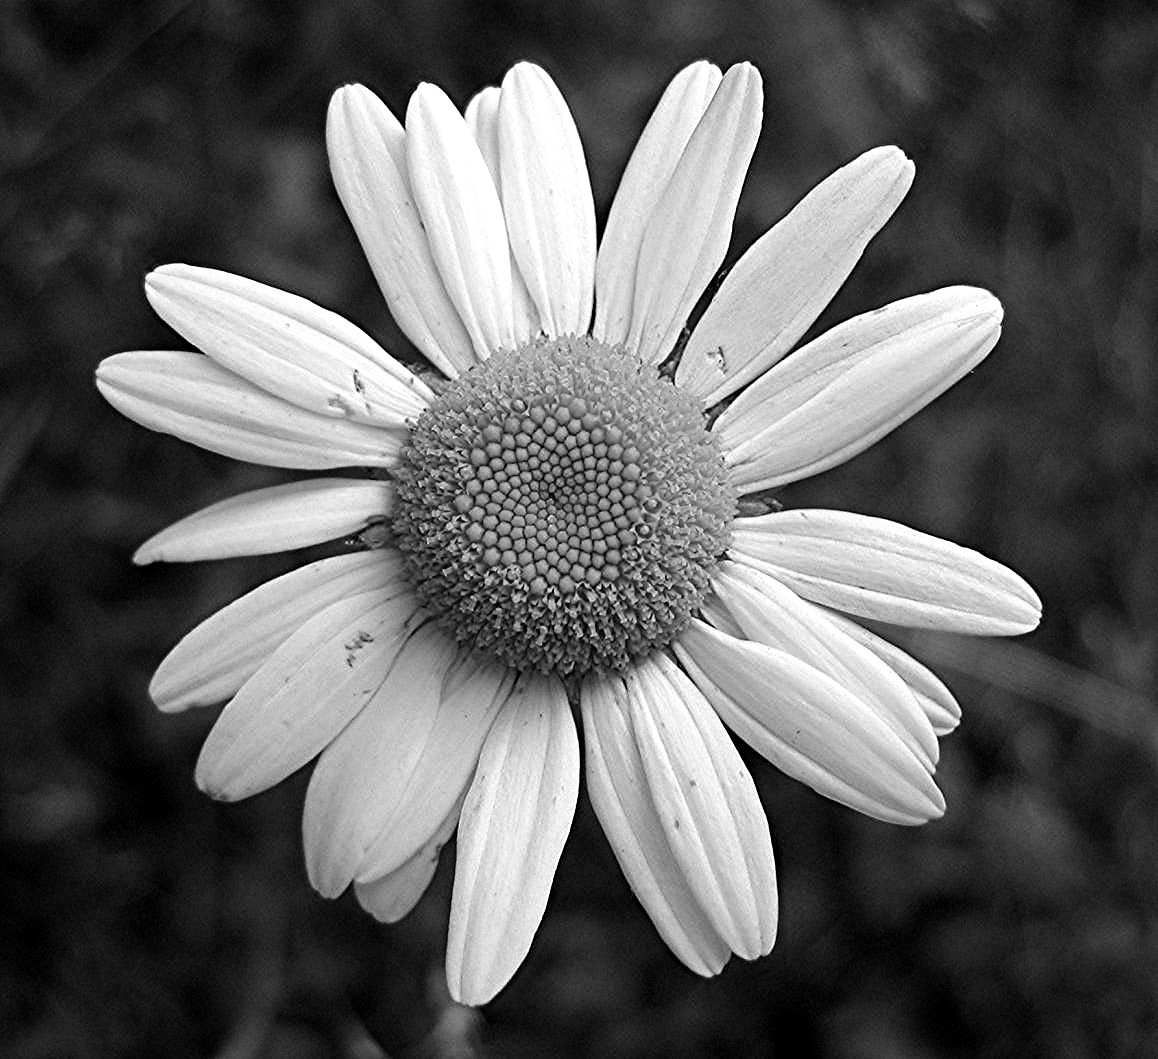 Black and White Daisy Wallpaper - WallpaperSafari